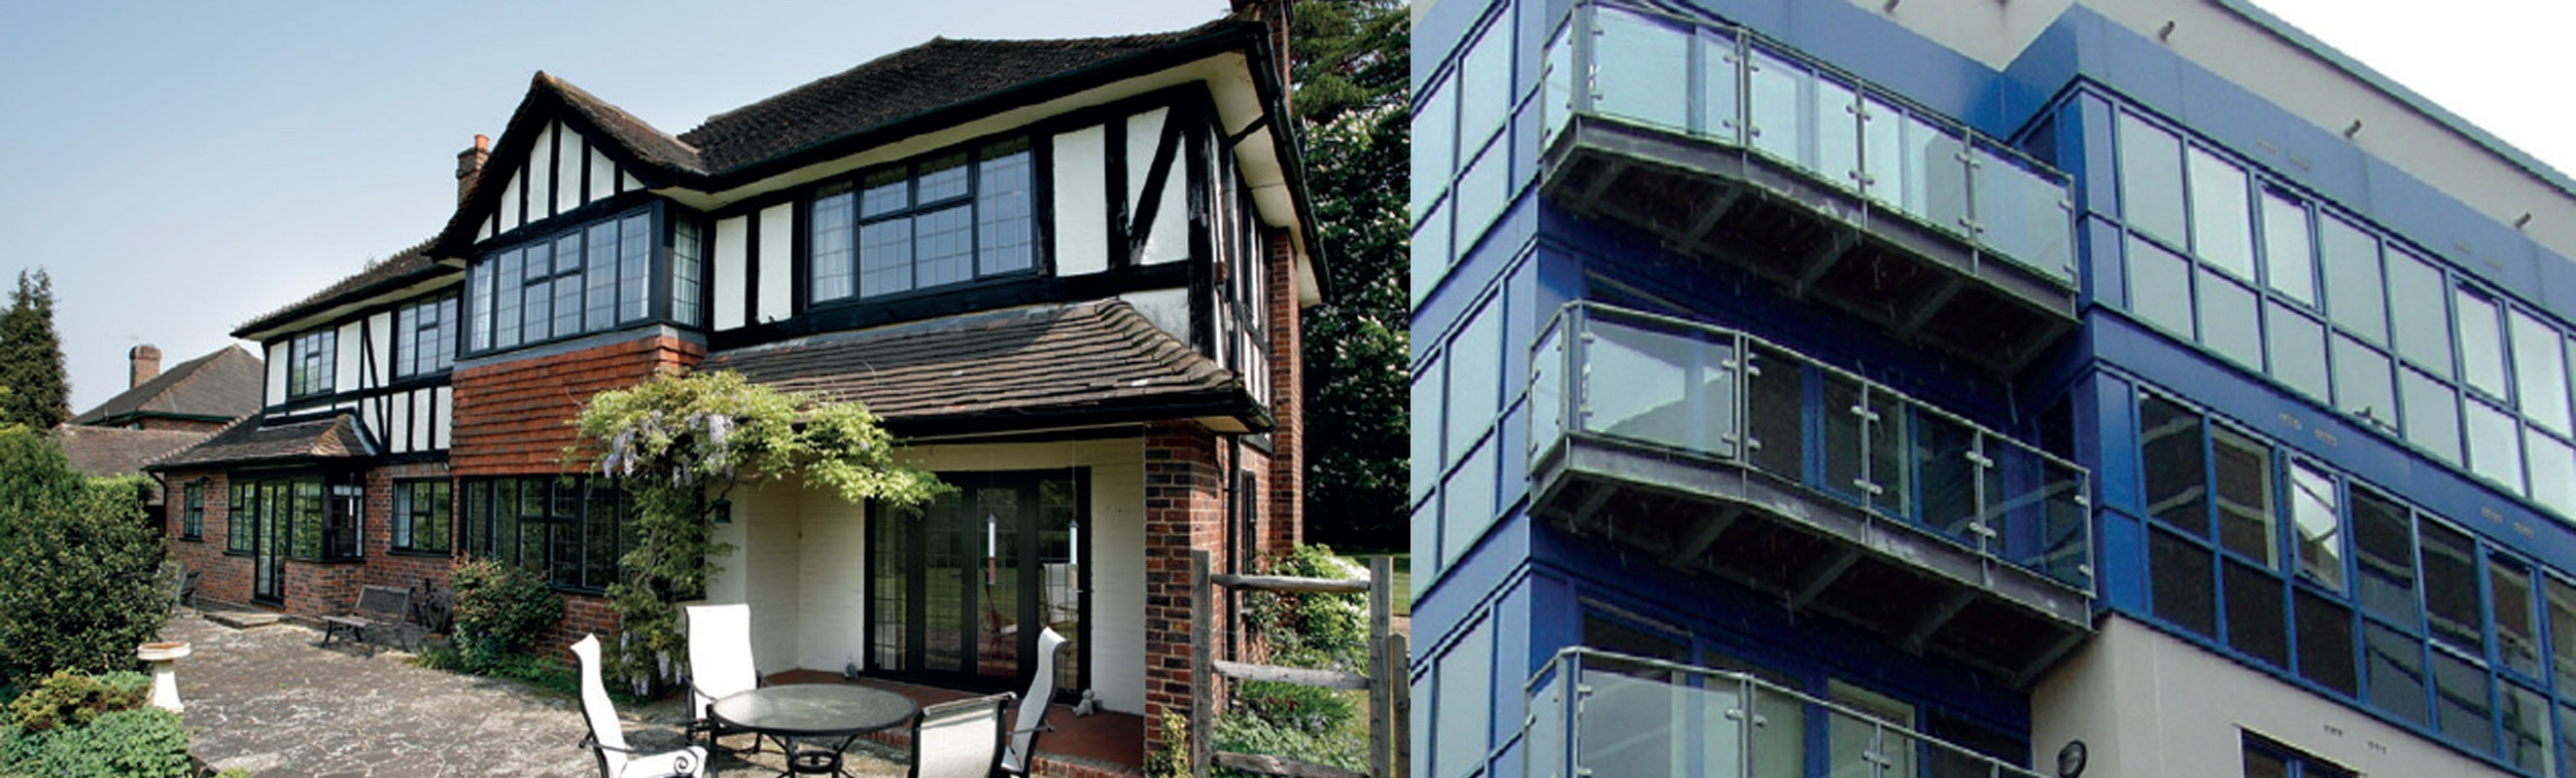 Aluminium Windows and Doors from Vevo